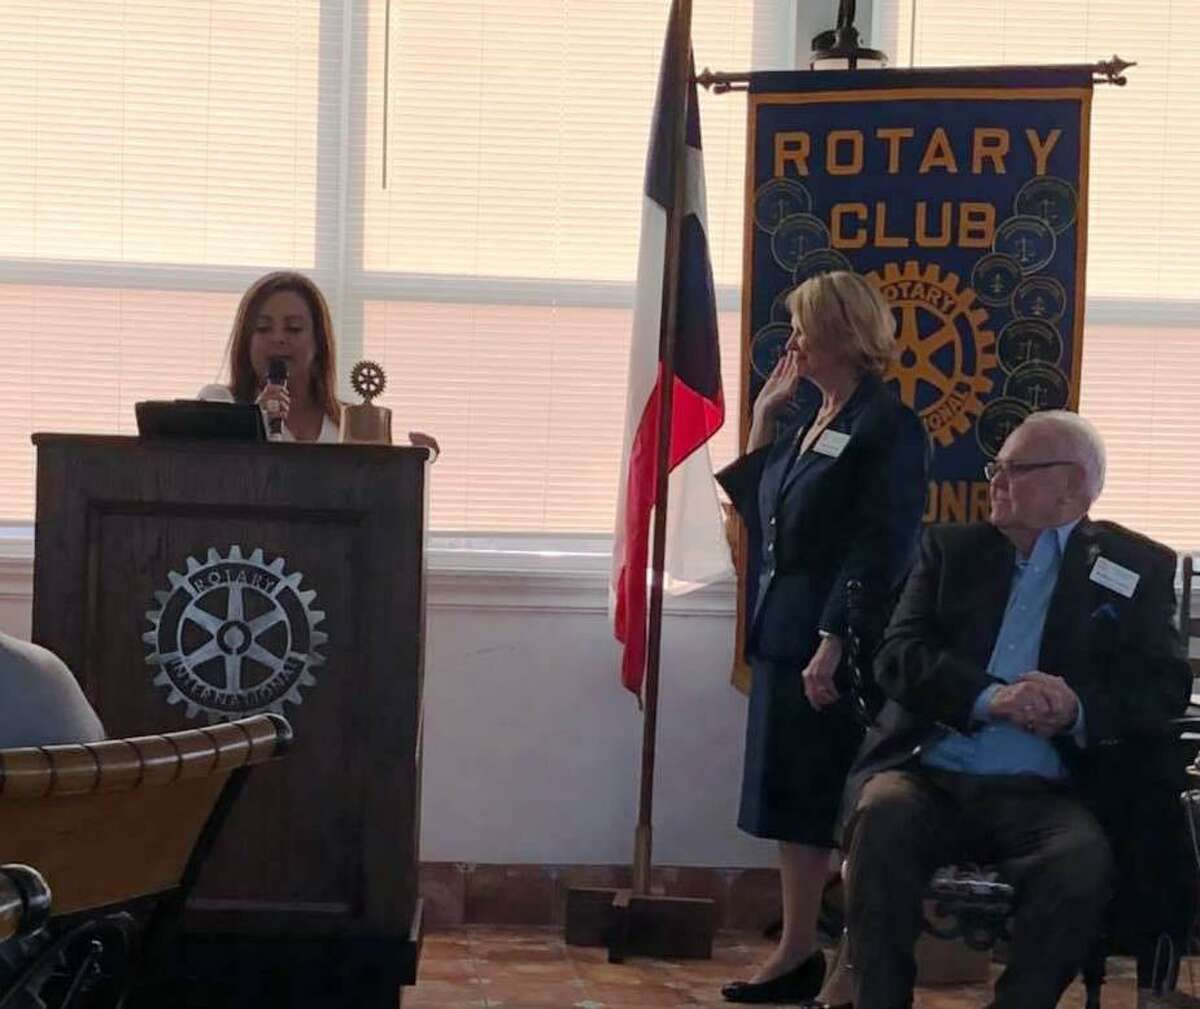 Doris Lockey, incoming President of The Rotary Club of Lake Conroe, being installed by outgoing President Monica Bresofski, as Wally Lockey looks on.